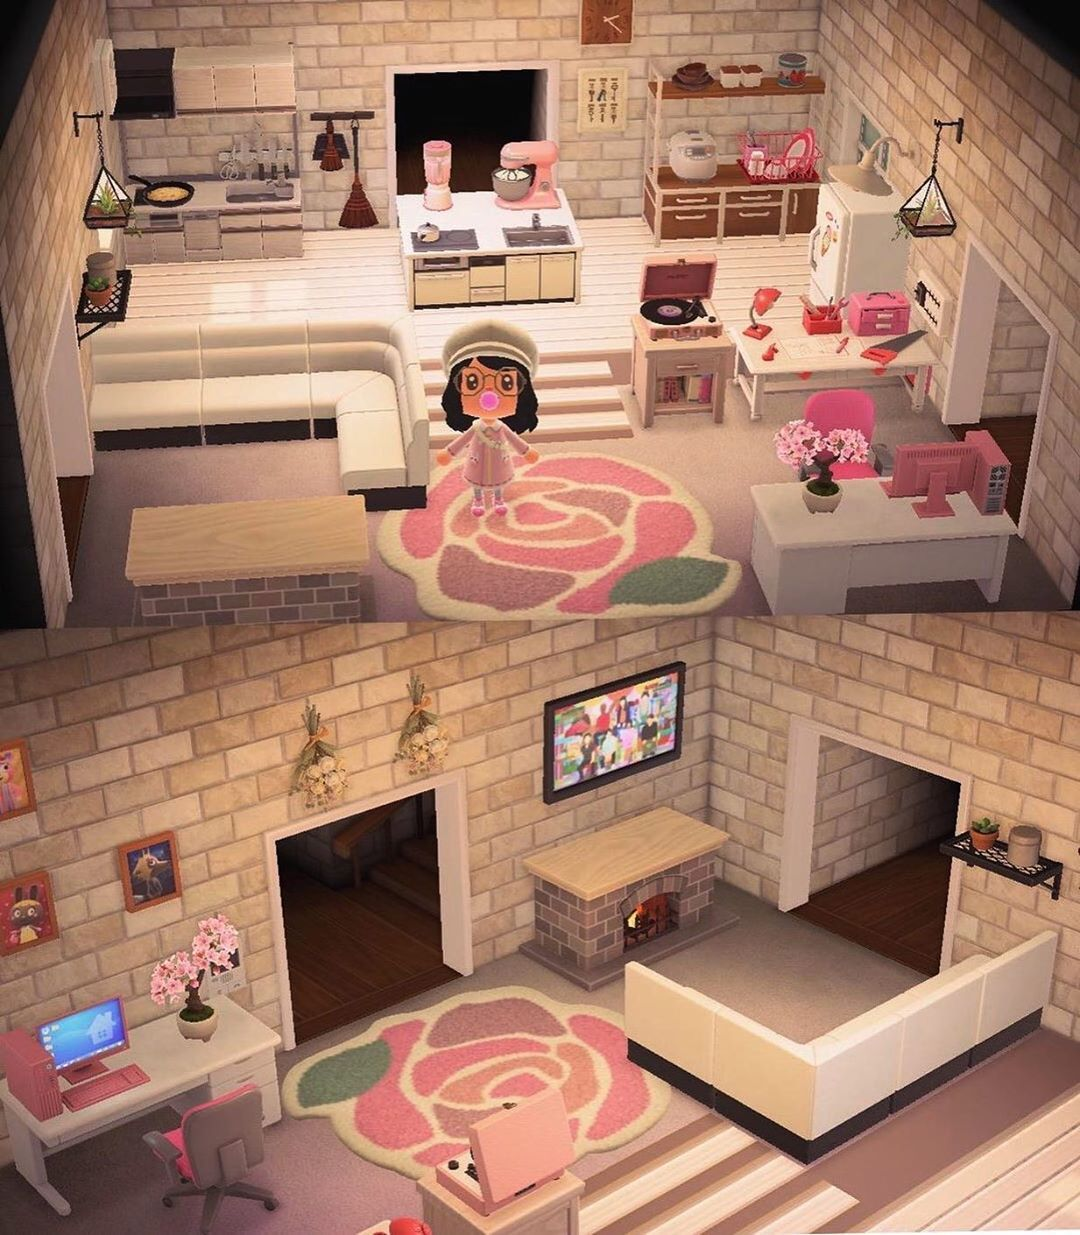 Animal Crossing Inspiration On Instagram Kitchen And Living Room In One By Ariepudo Reddit An In 2020 Animal Crossing House Decorating Themes Kitchen Set Up